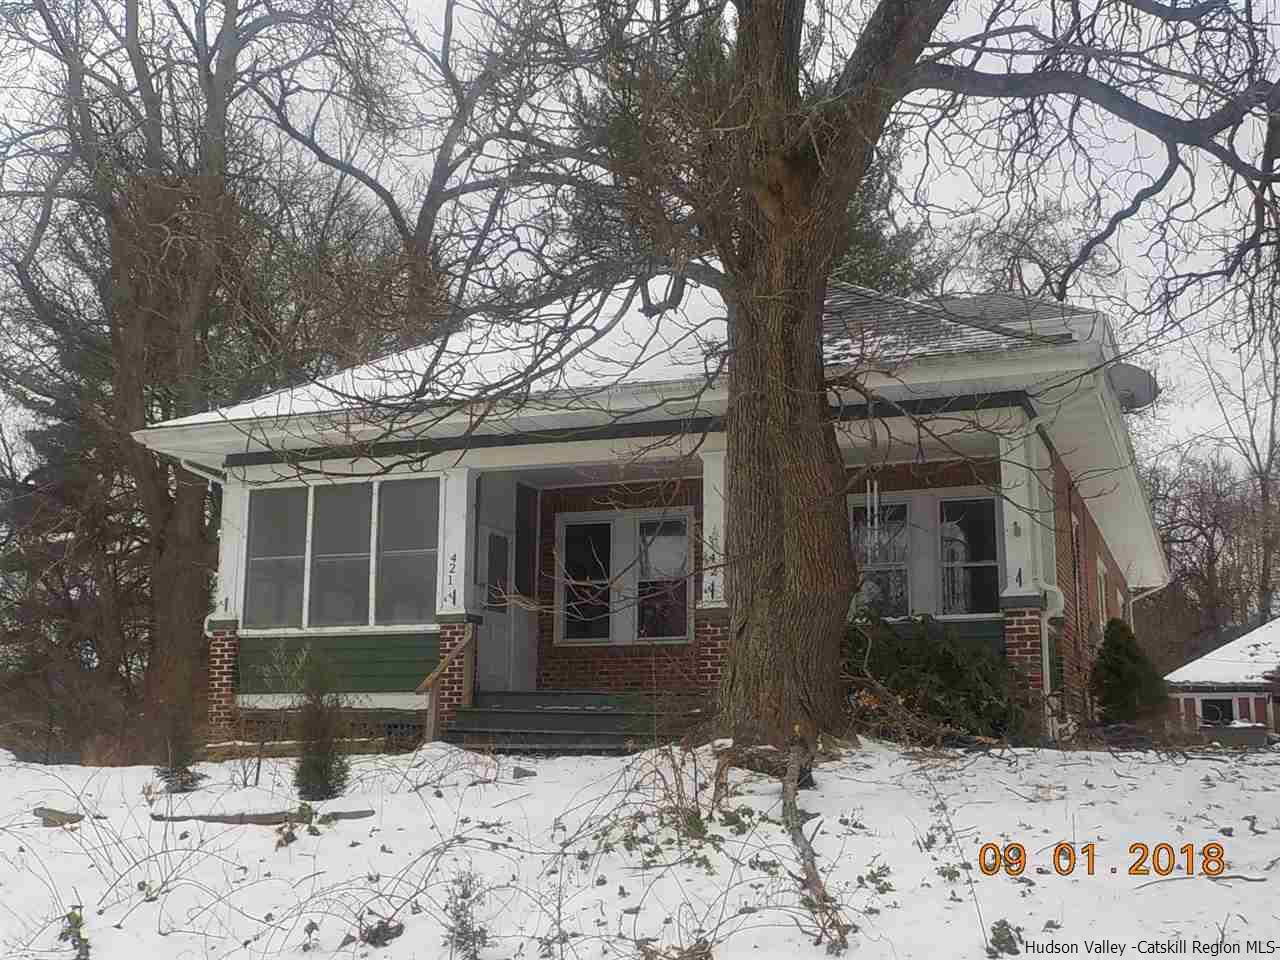 Single Family Home for Sale at 421 Route 212 421 Route 212 Saugerties, New York 12477 United States